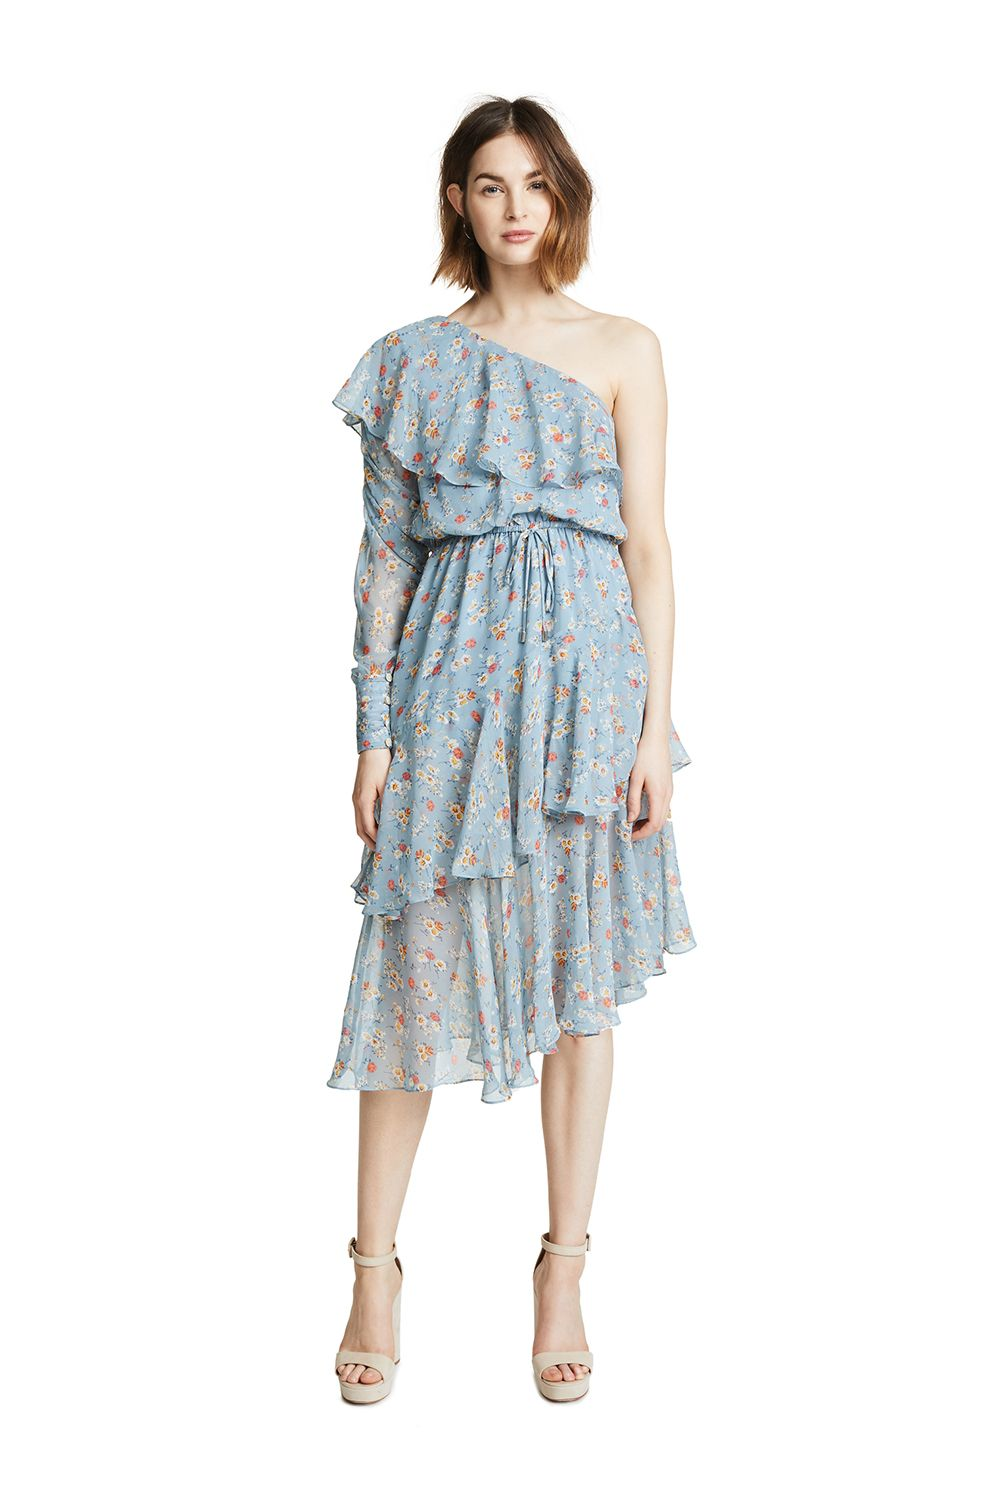 Summer Wedding Guest Dresses — Where to Buy Cute, Affordable Summer ...